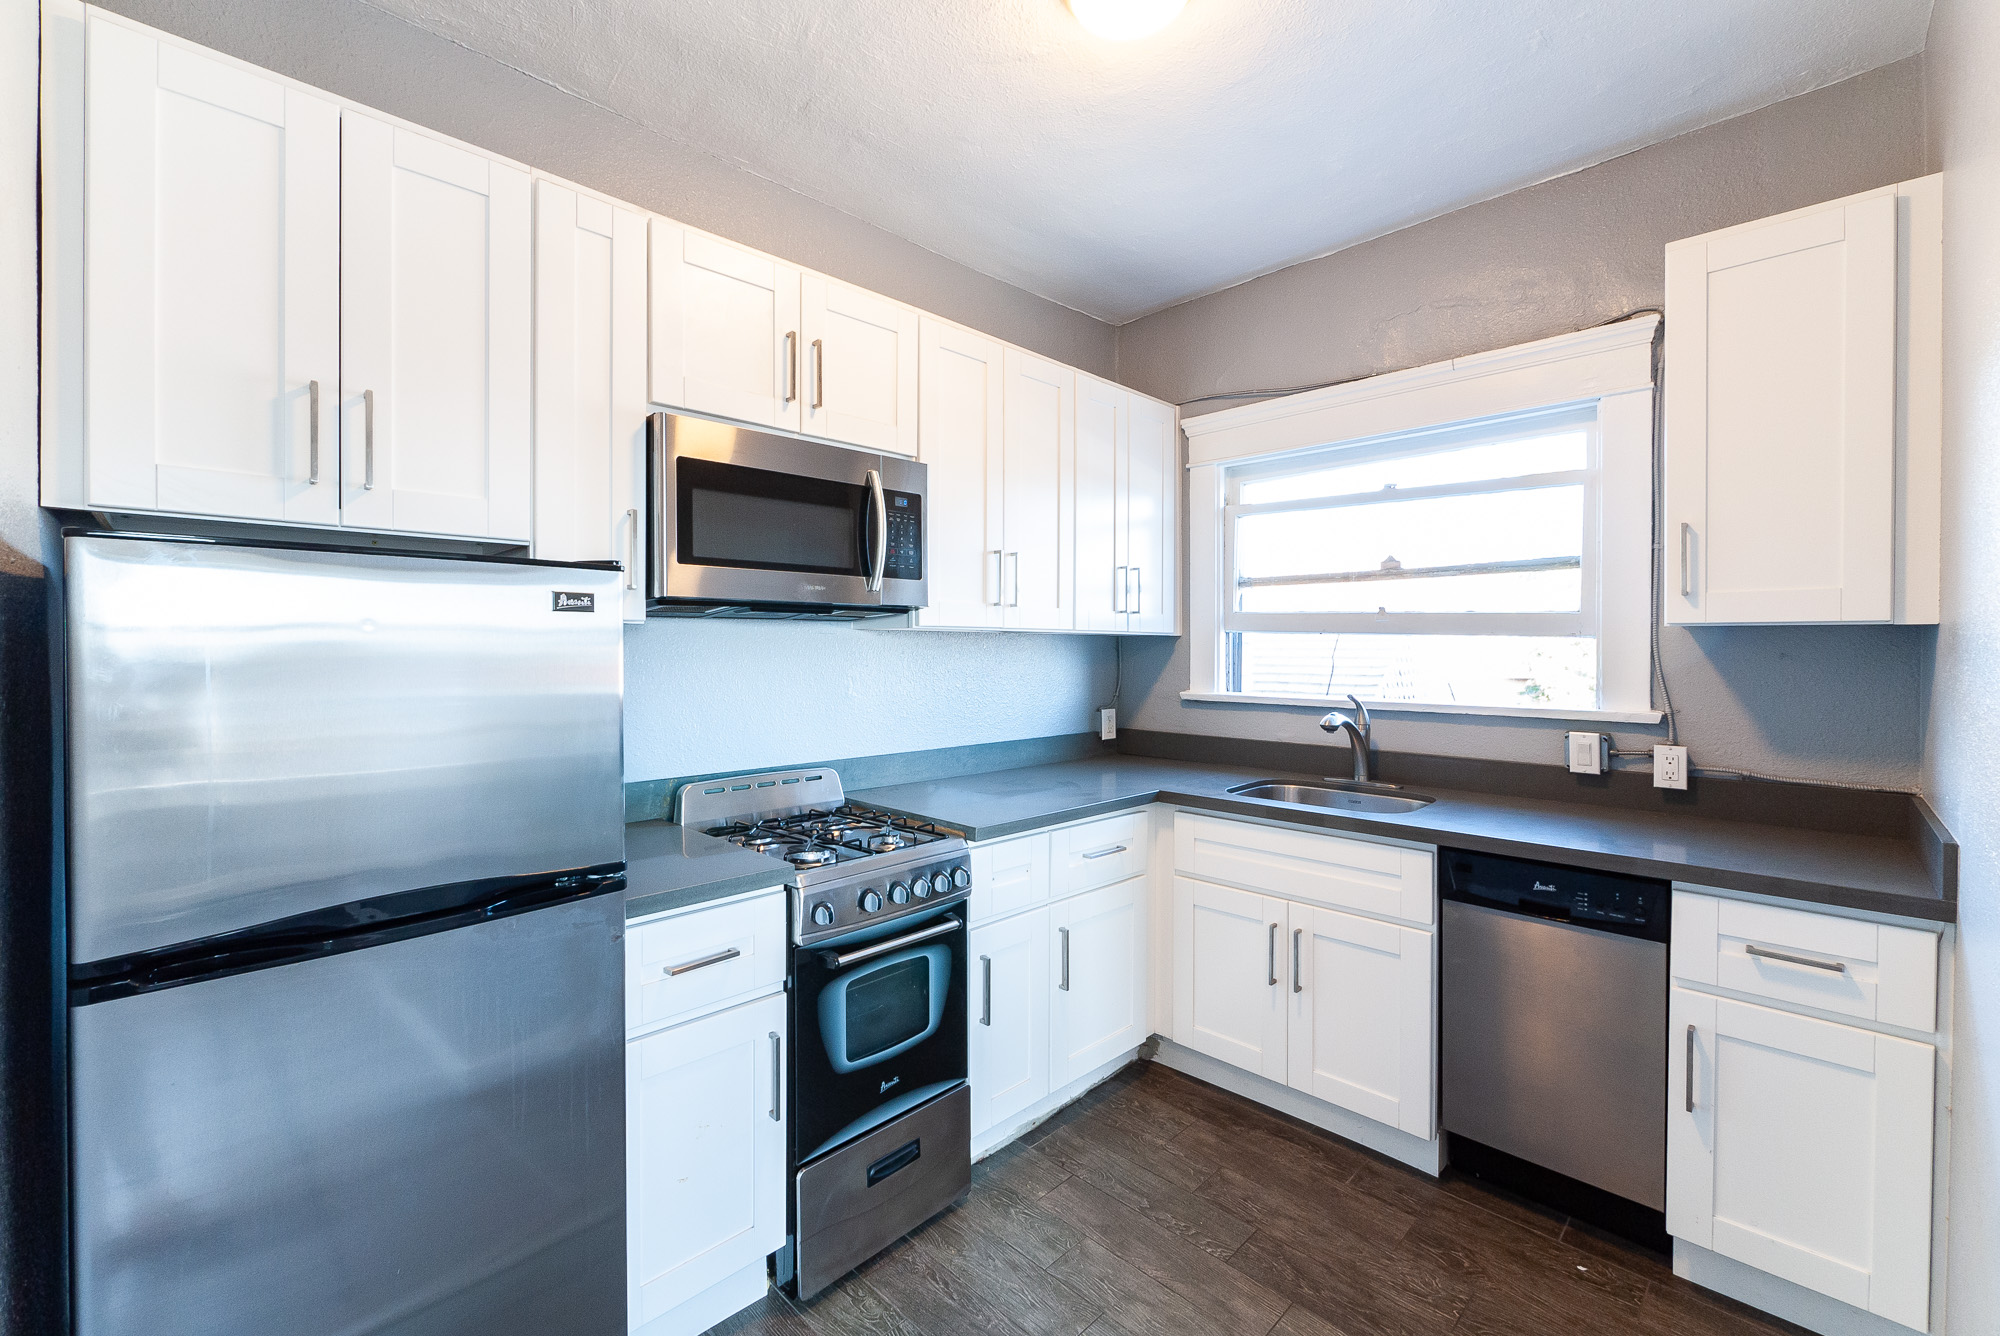 Prime Lincoln Heights 1 Bedroom + Den Option For Parking!   2 Weeks Free - Inquire For Deets!